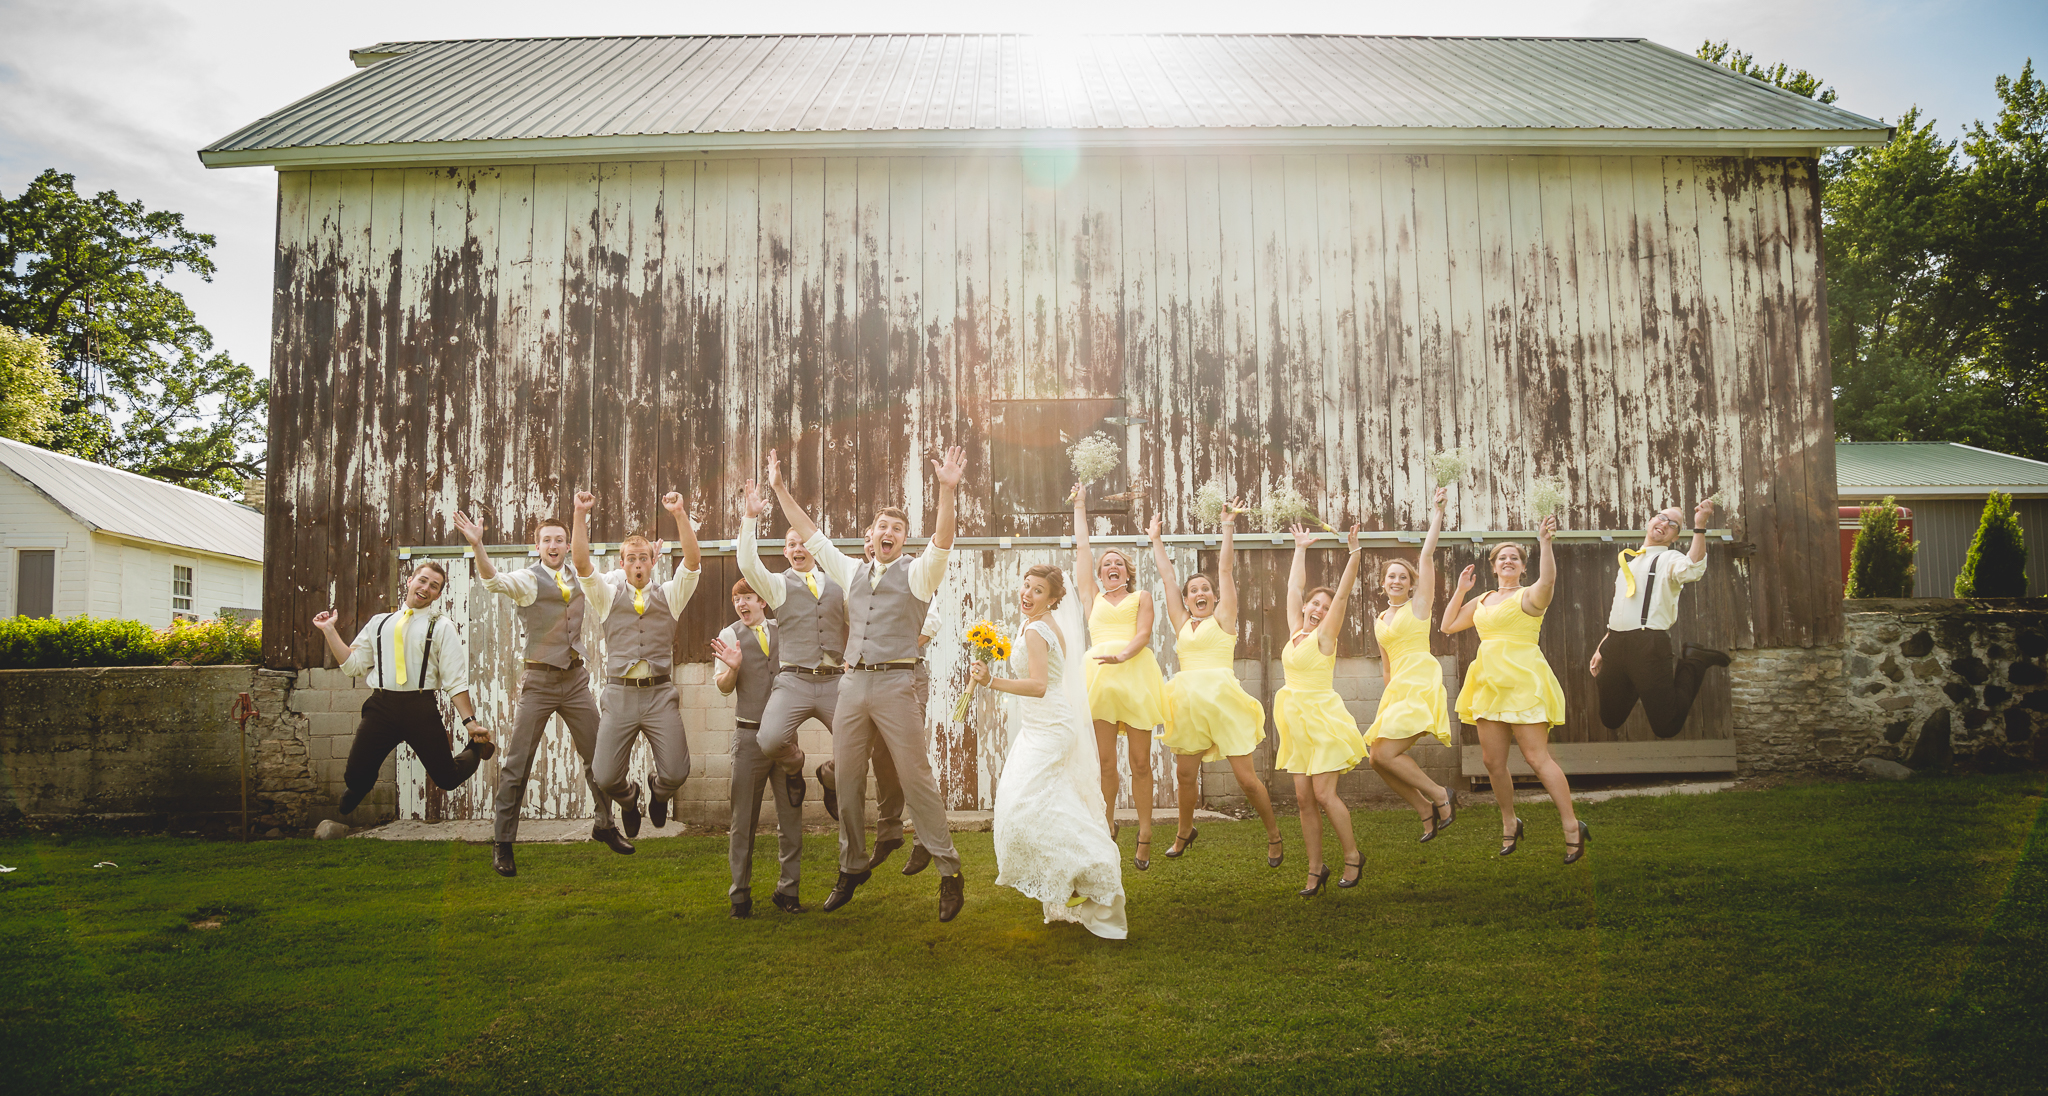 Montello WI wedding photographer